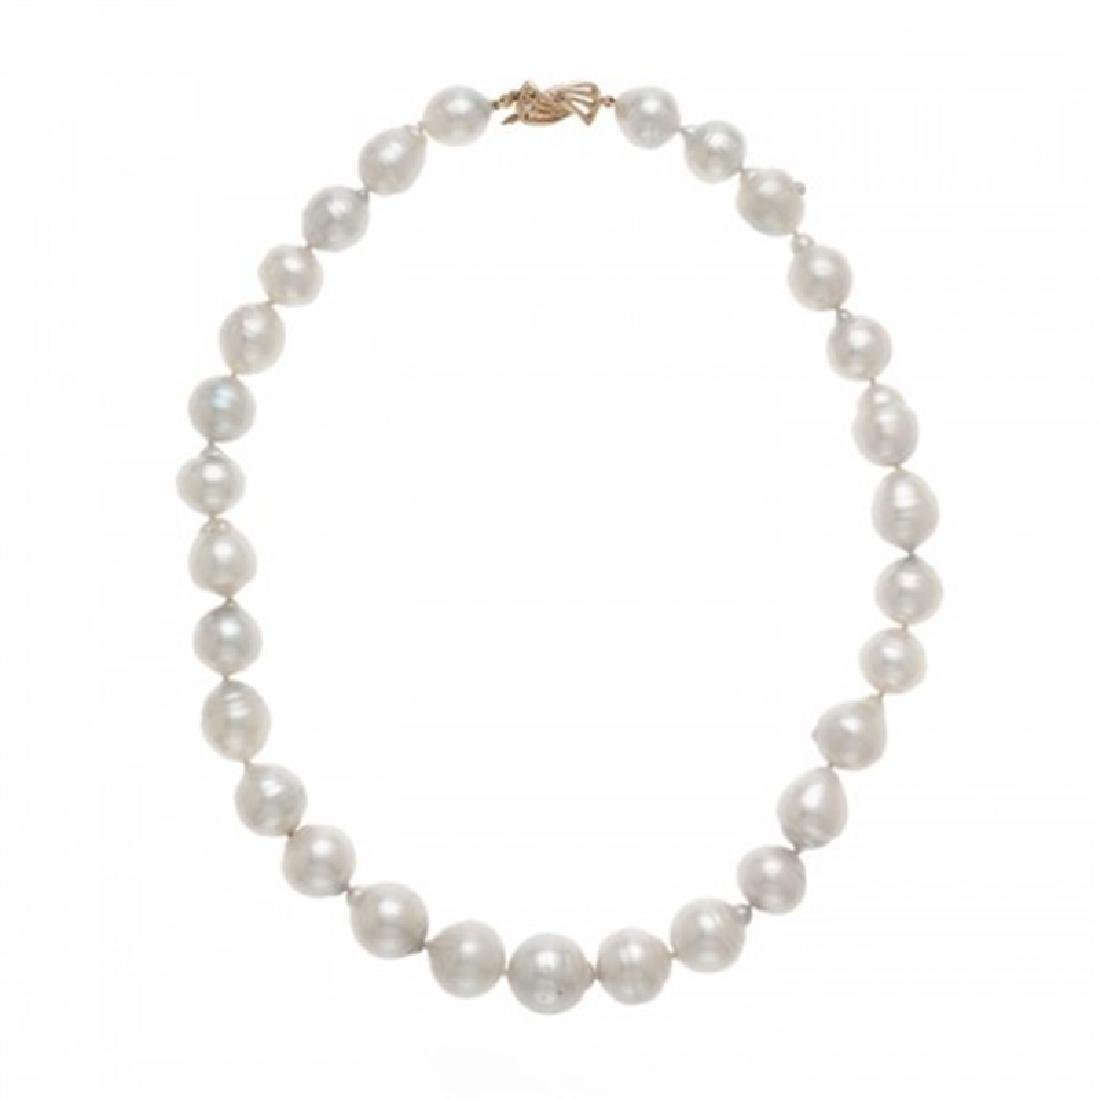 11.0-14.5mm Graduated South Sea Pearl Necklace